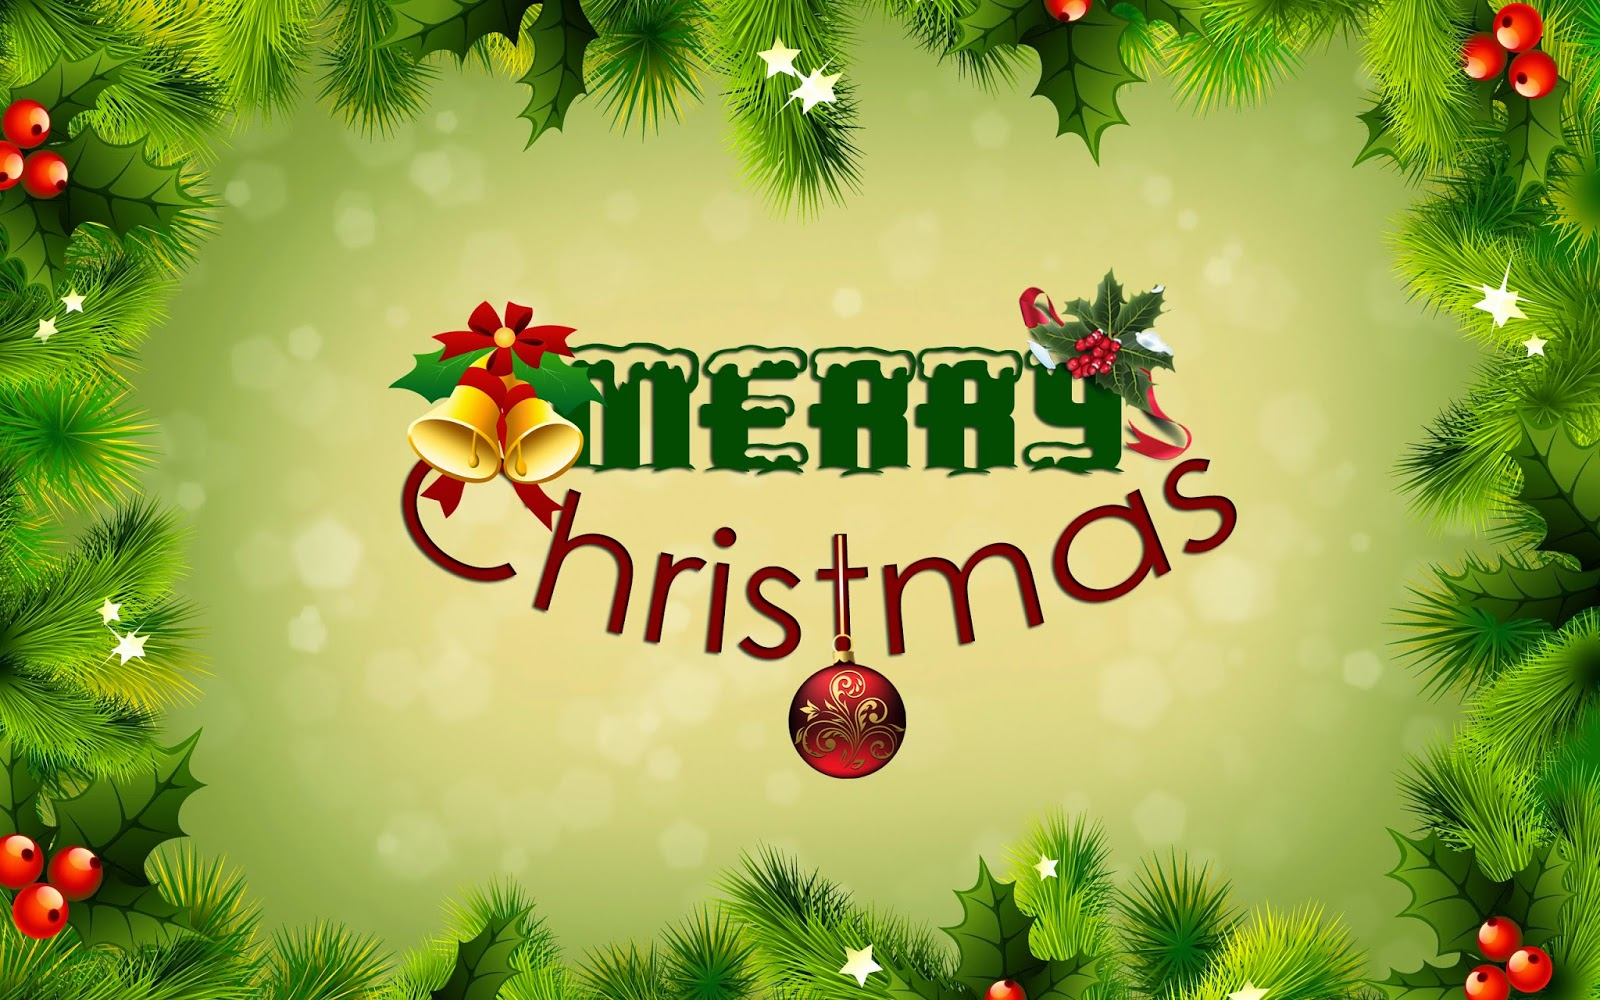 HD-Merry-Christmas-wallpaper-images-green-theme-garland-for-powerpoint-slides-PPT-document-mail.jpg